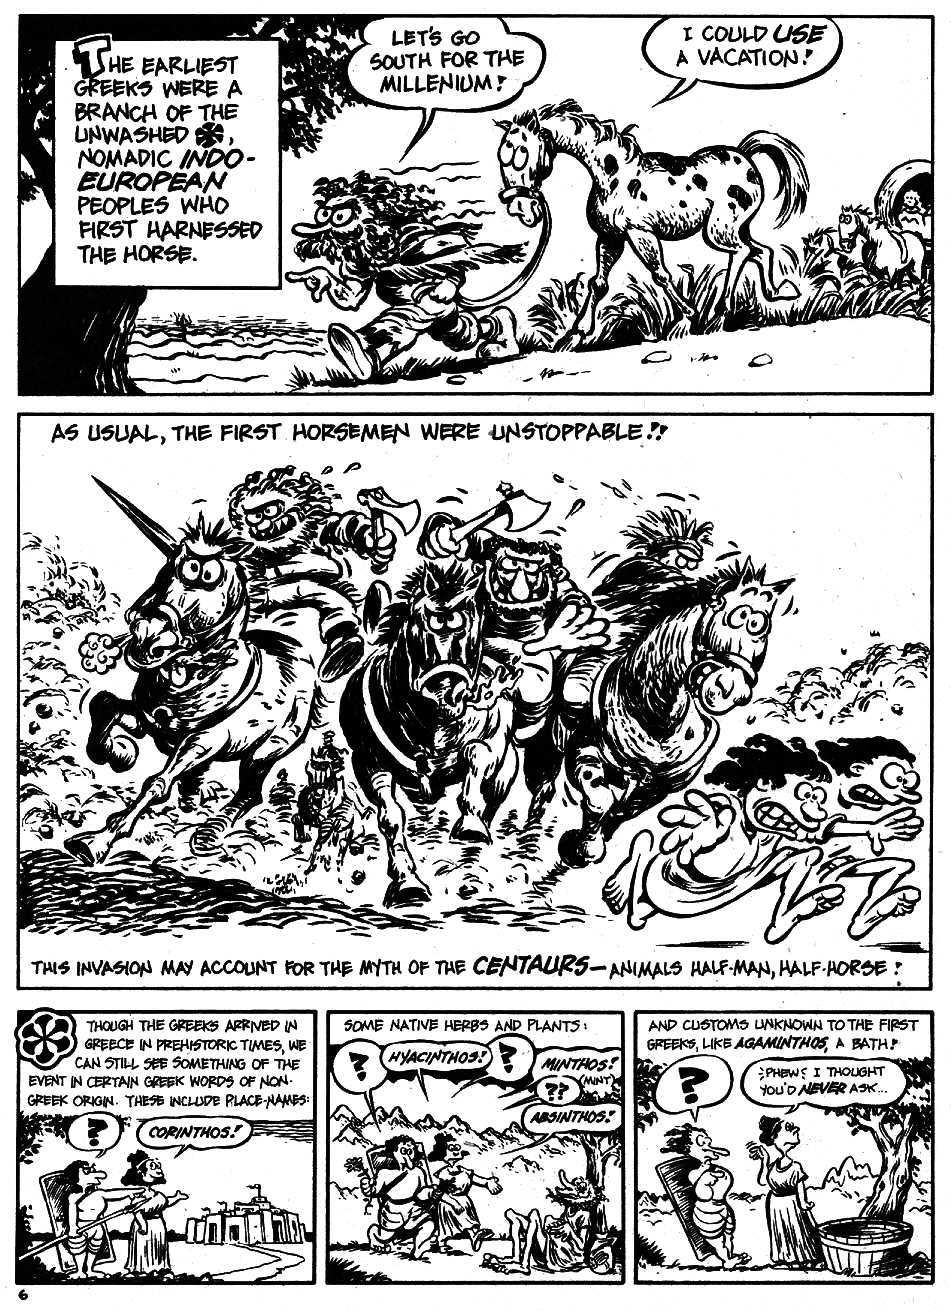 Read online The Cartoon History of the Universe comic -  Issue #5 - 8